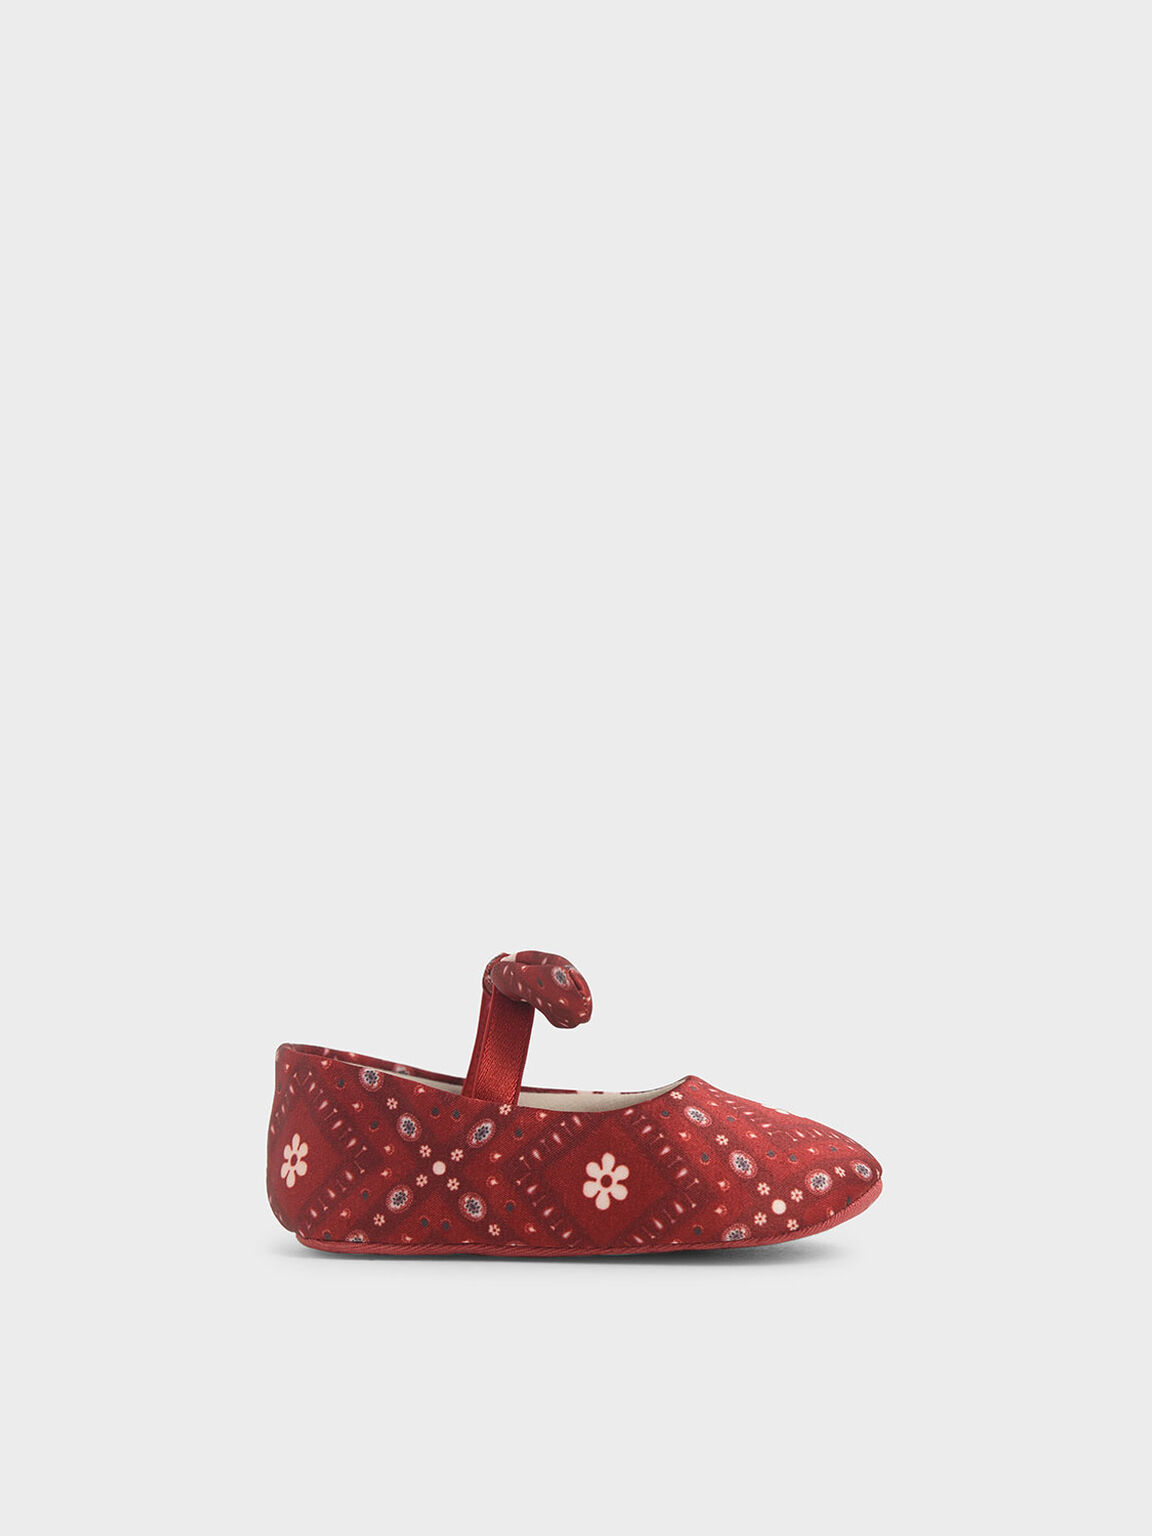 The Purpose Collection - Baby Girls' Bandana Print Bow Ballerinas, Red, hi-res